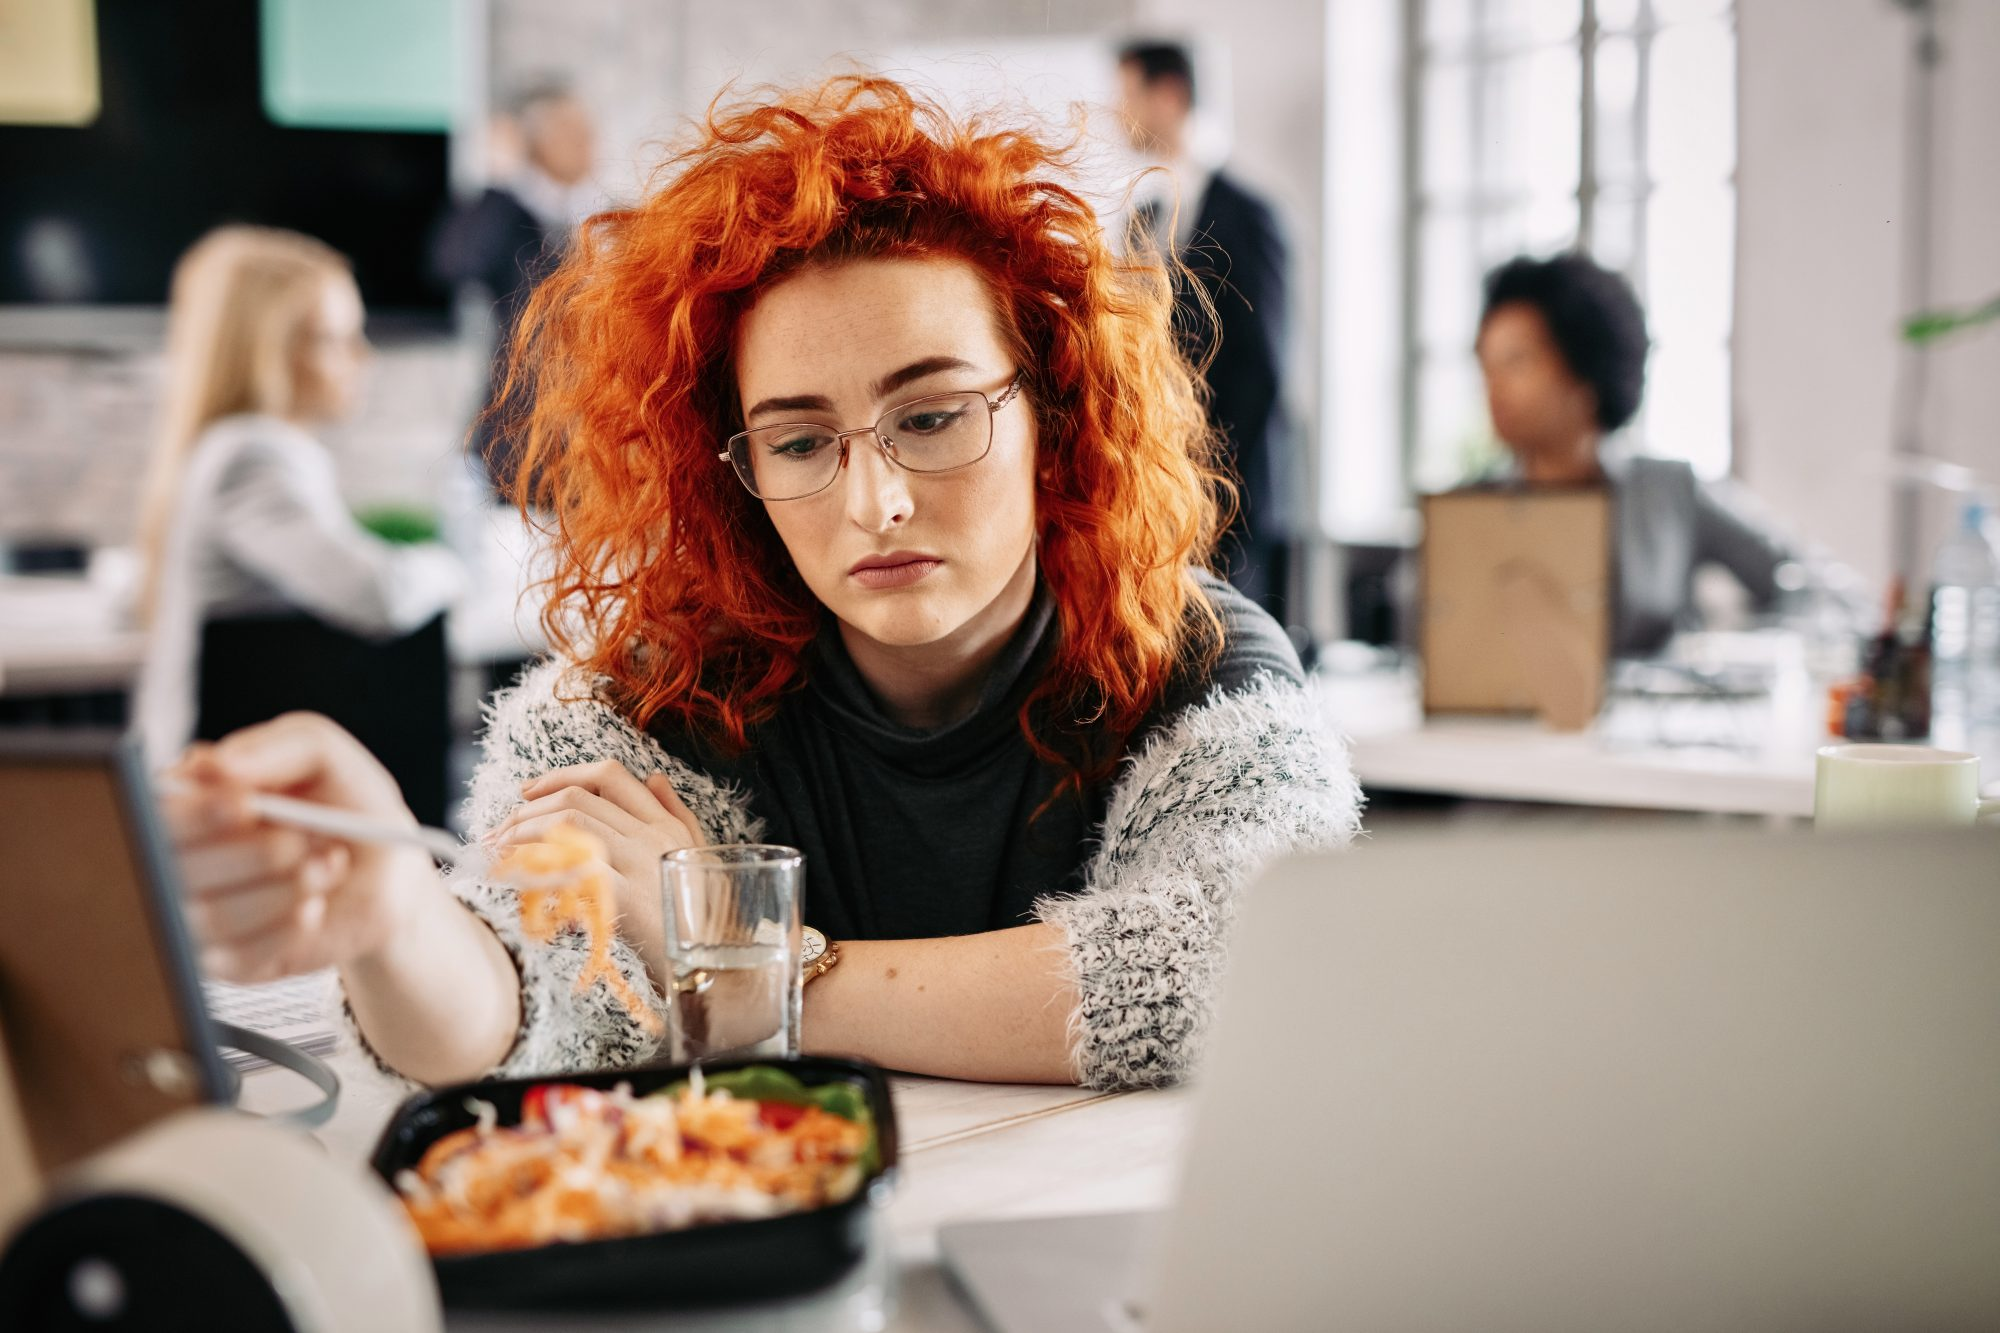 Millennials Want Lunch Breaks, But Can't Take Them